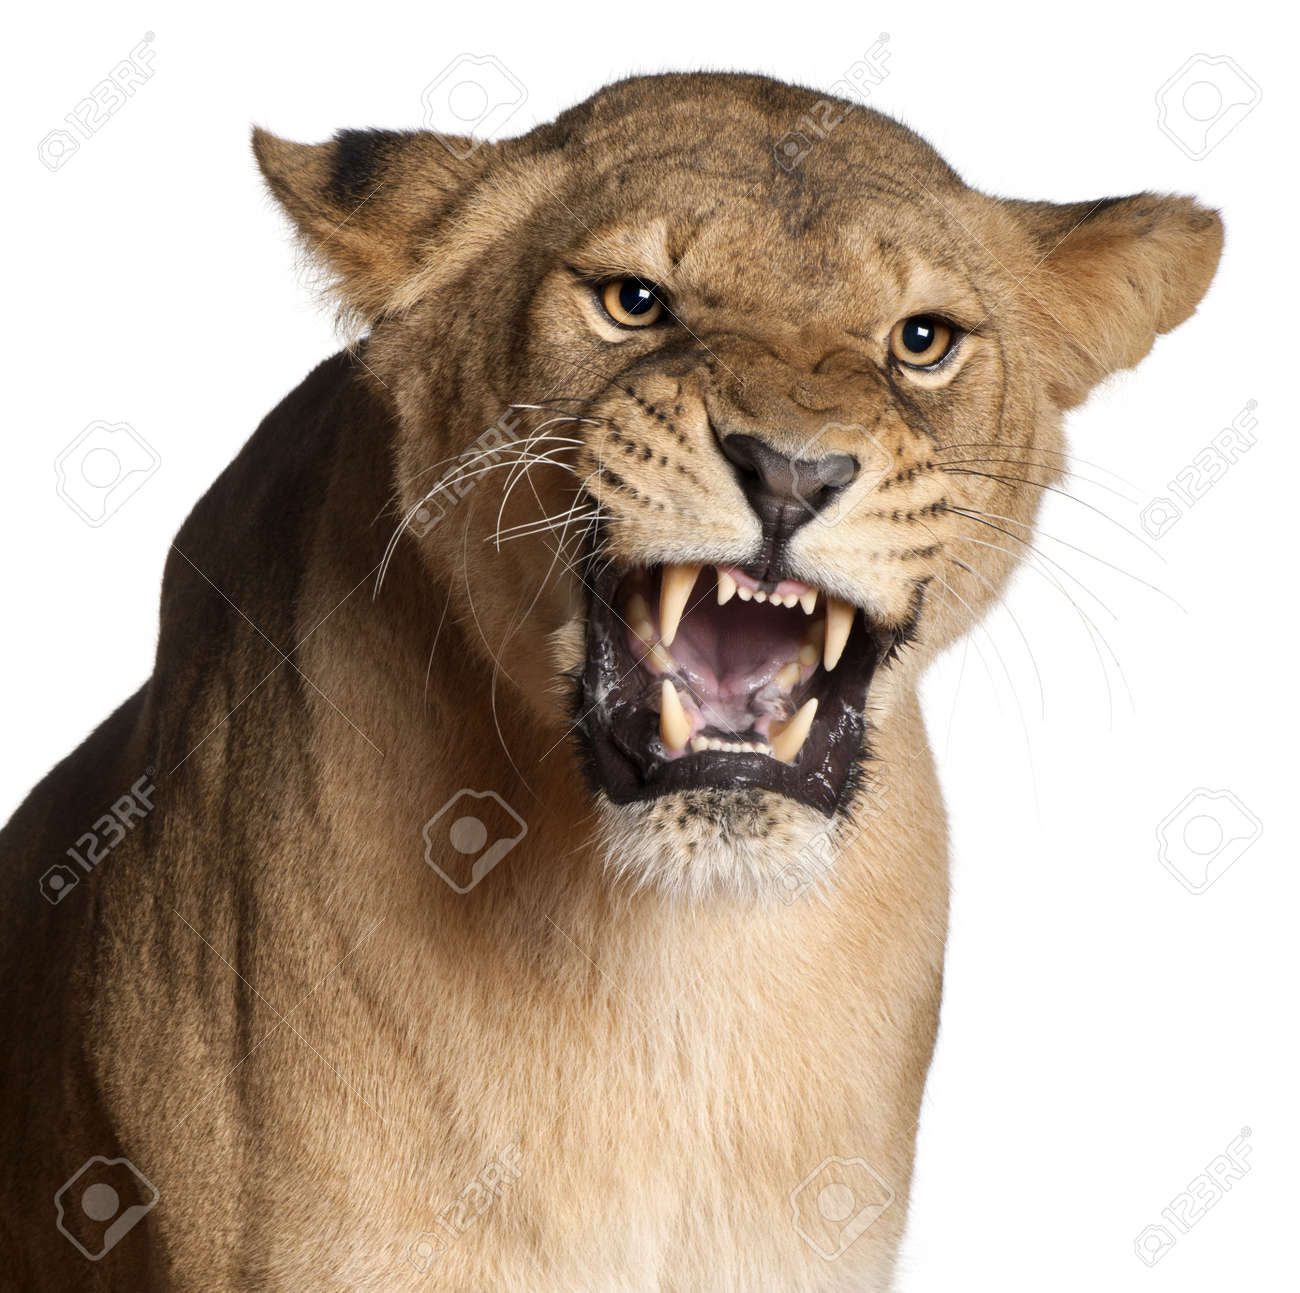 Lioness Front View Lioness  Panthera leo  3 years